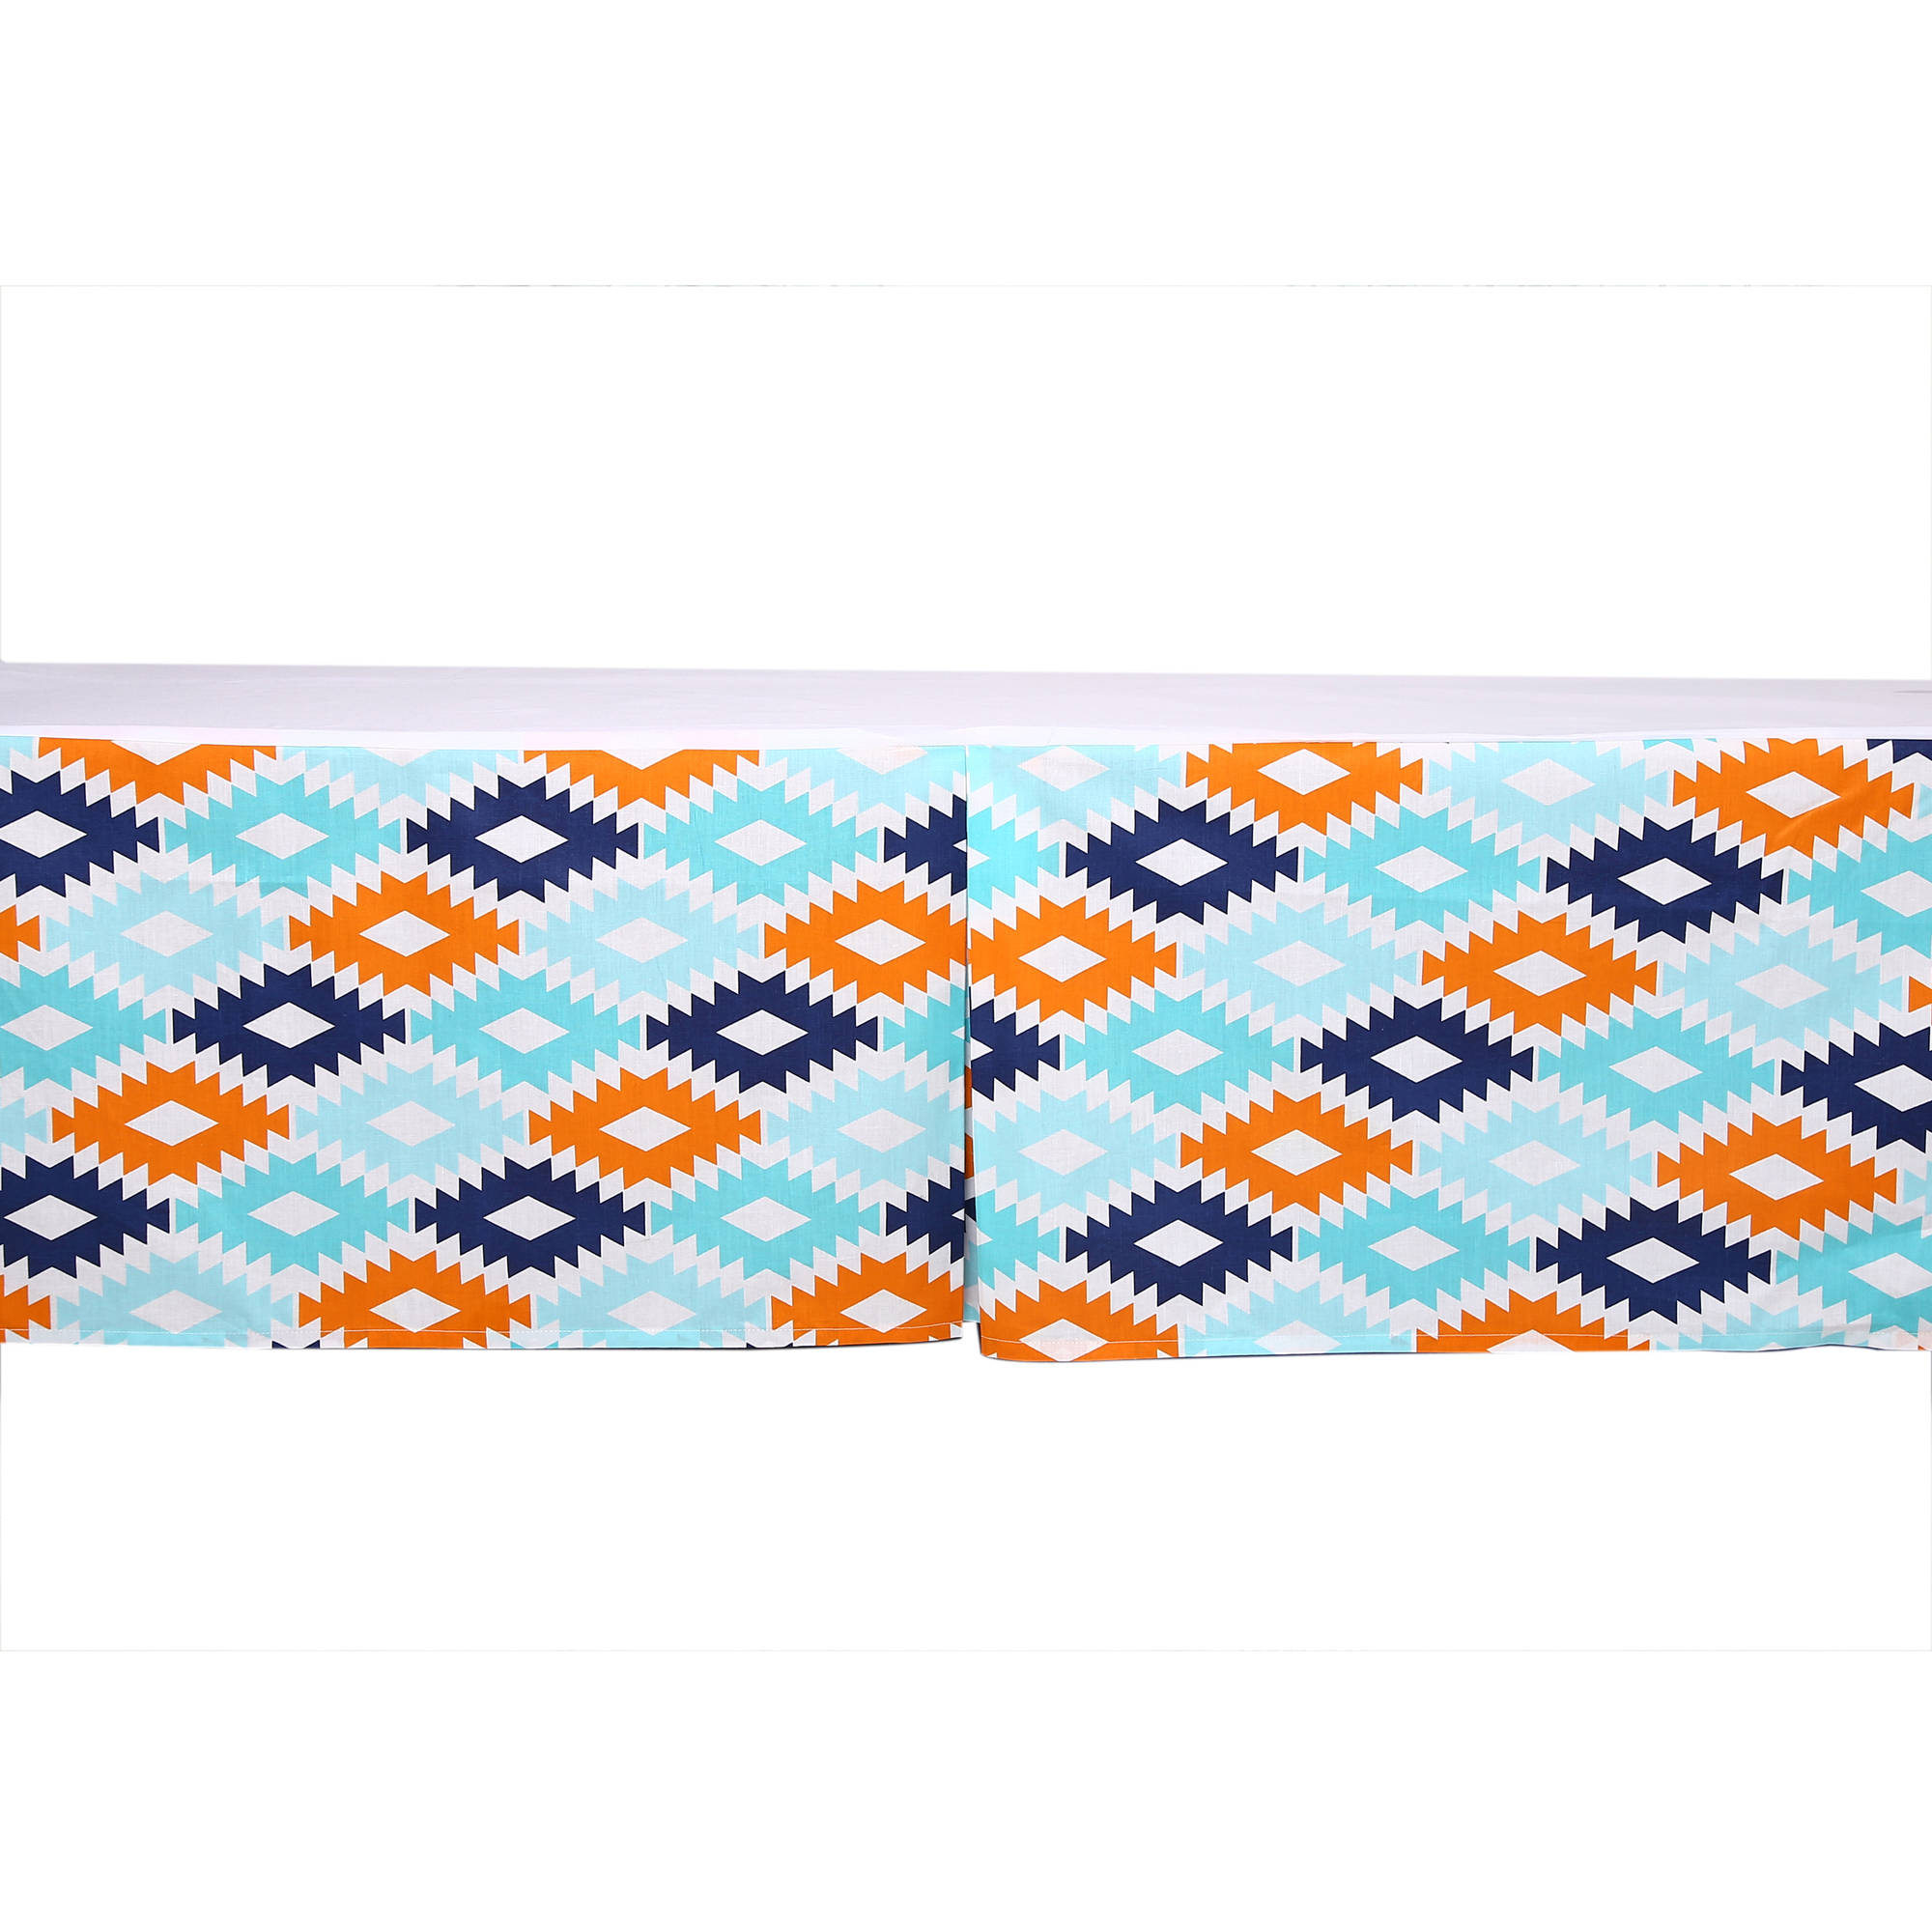 Bacati - Liam Aztec Kilim Aqua/Orange/Navy Tailored with 100% Cotton Percale 13 inch drop Crib/Toddler Bed Skirt